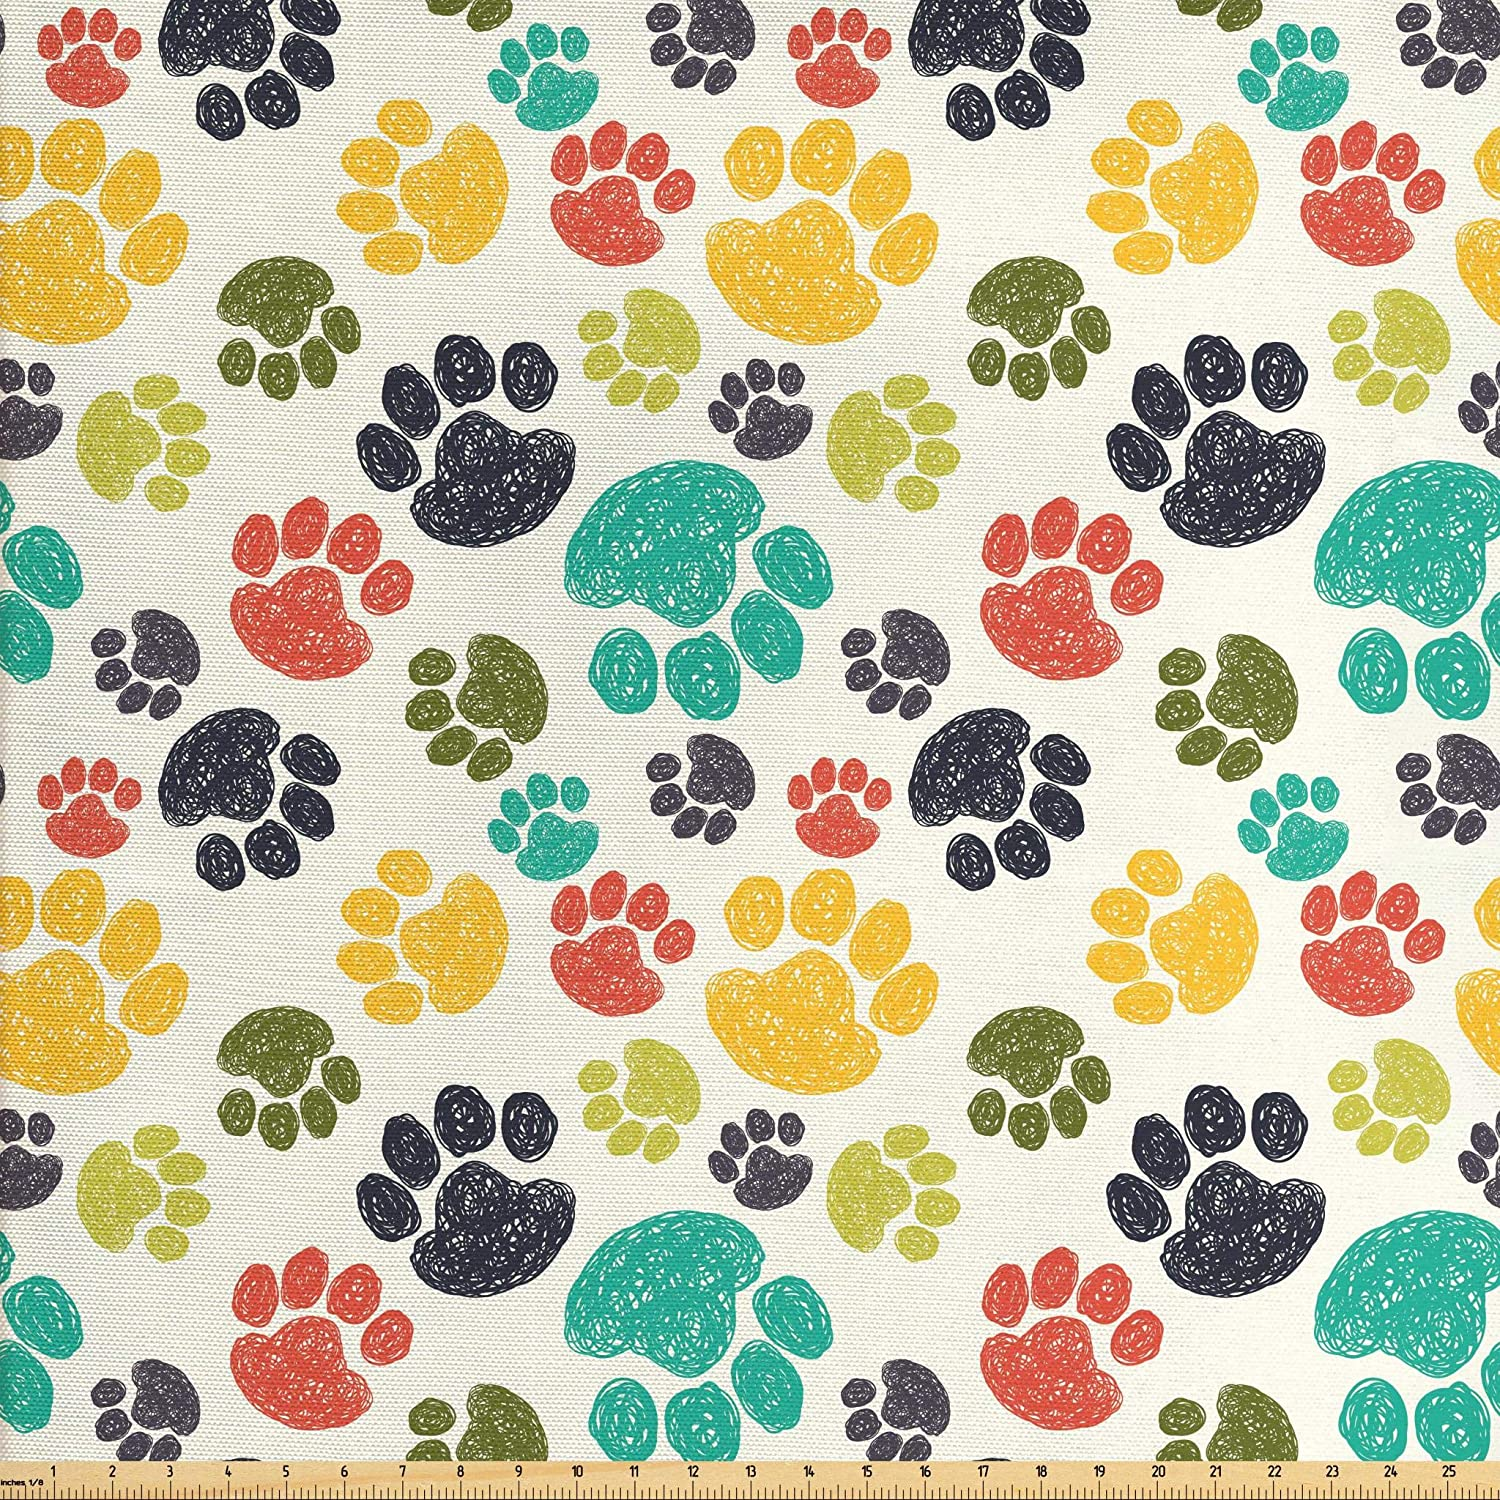 Ambesonne Dog Lover Fabric by The Yard, Hand Drawn Paw Print Doodles Circular Pattern Children Drawing Style Animal, Decorative Fabric for Upholstery and Home Accents, 1 Yard, Charcoal Beige